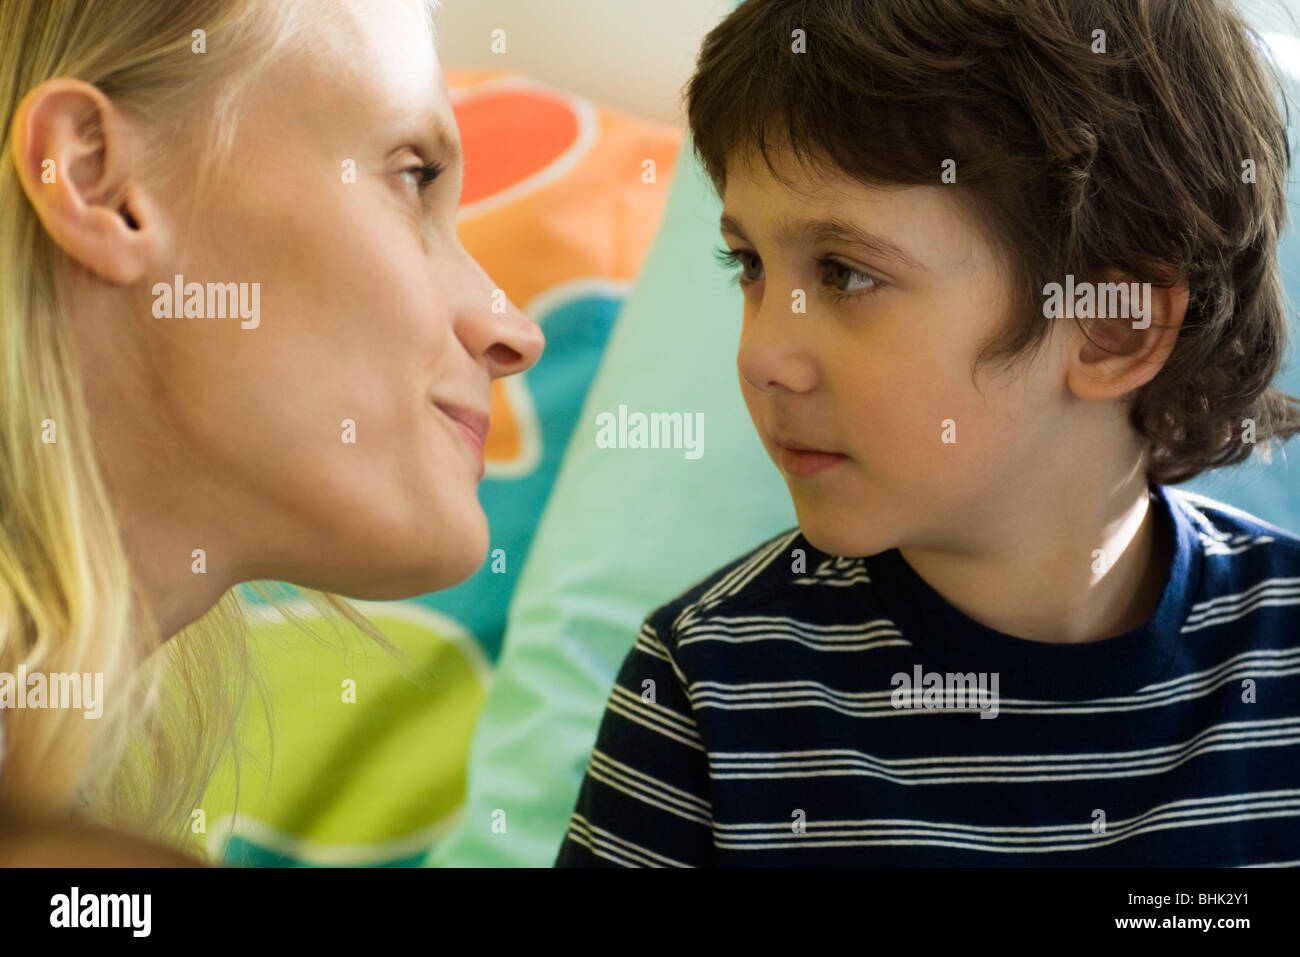 Mother with young son - Stock Image